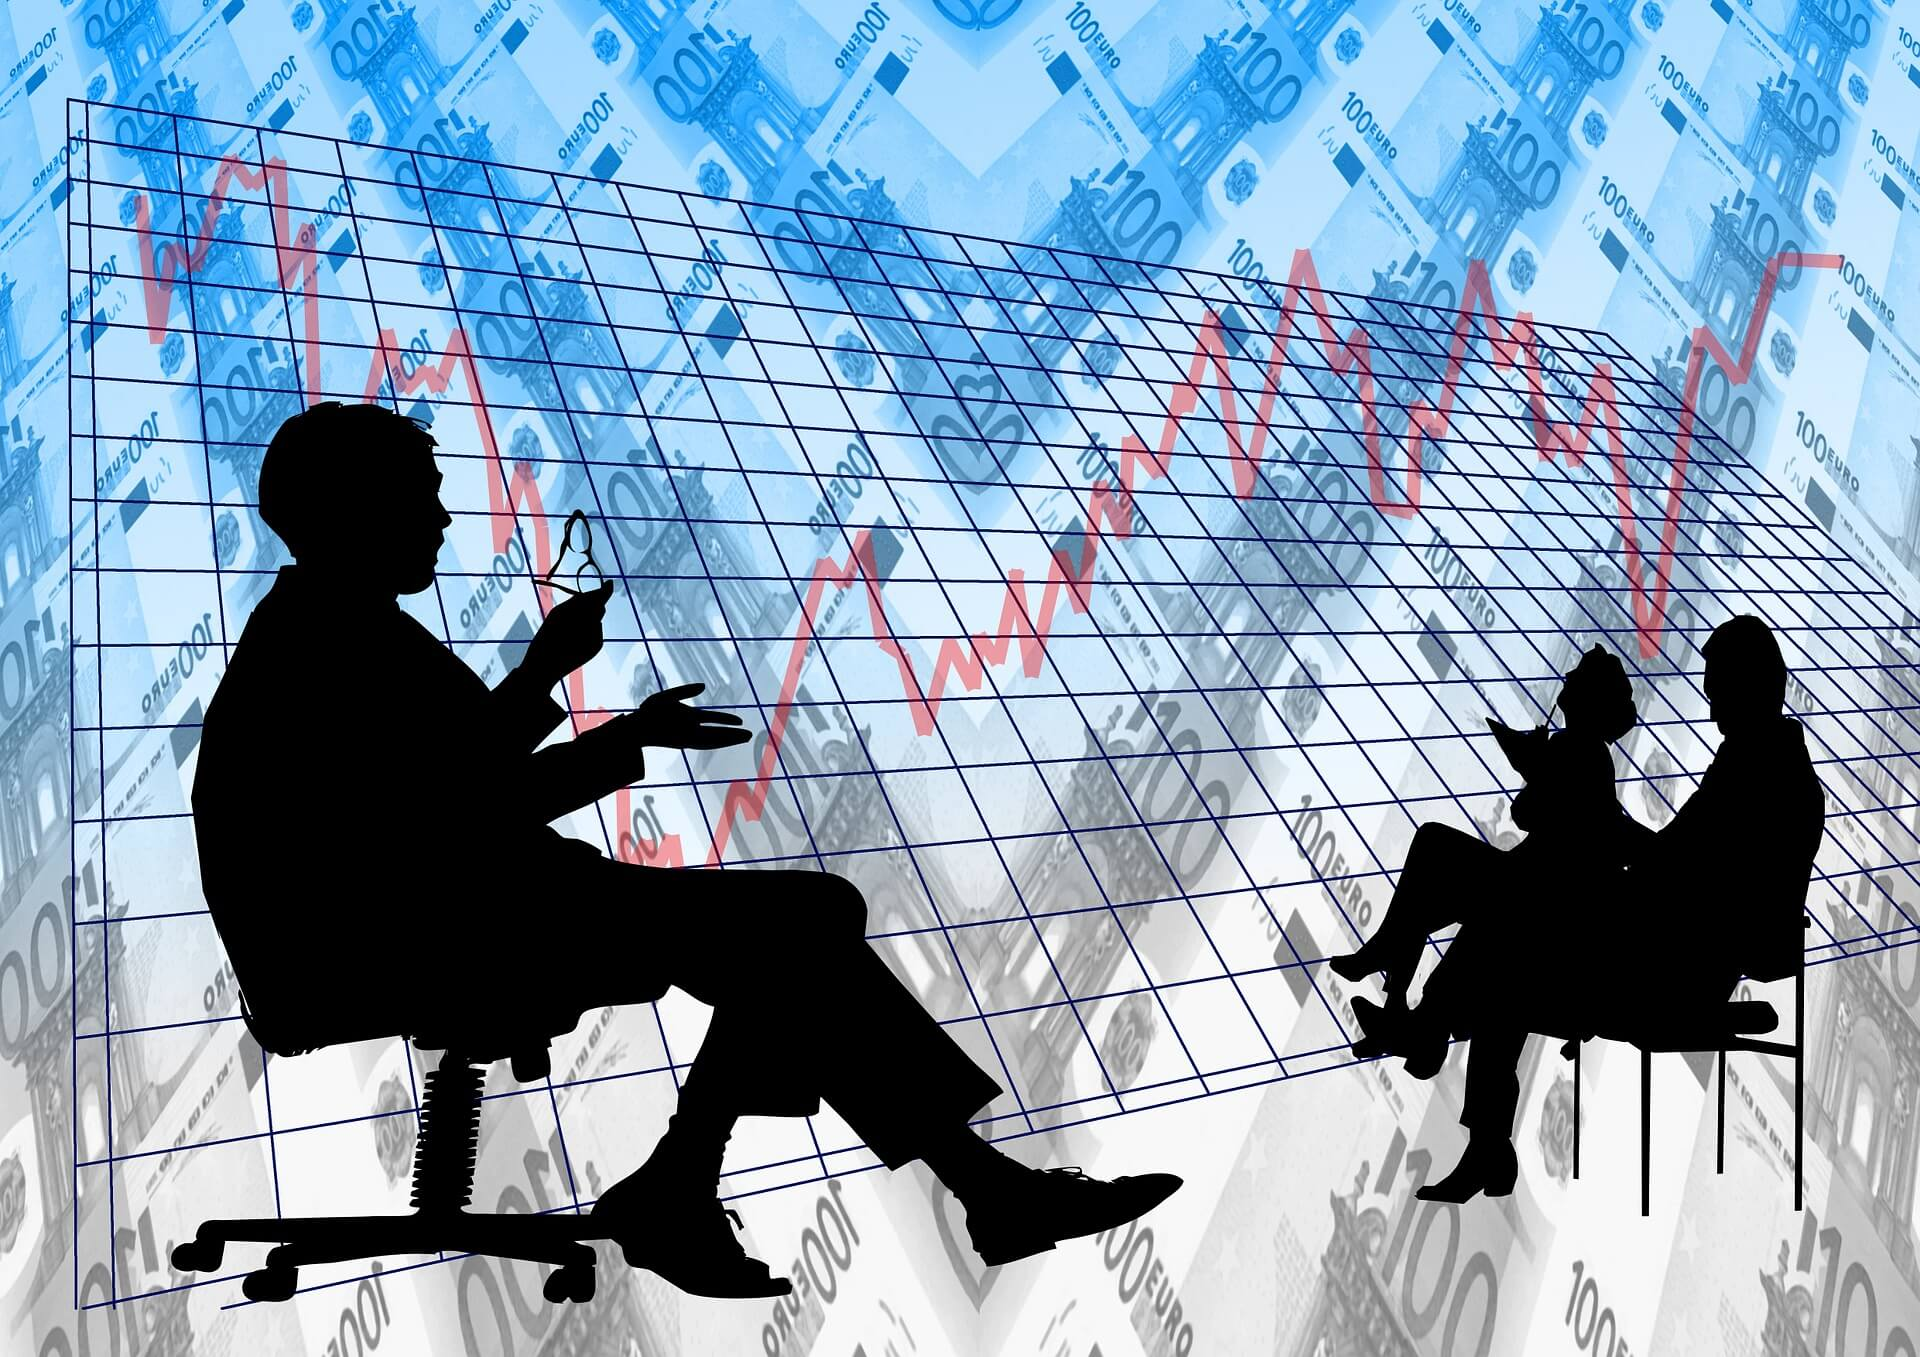 graph-red-lines-fluctuations-people-sitting-discussing